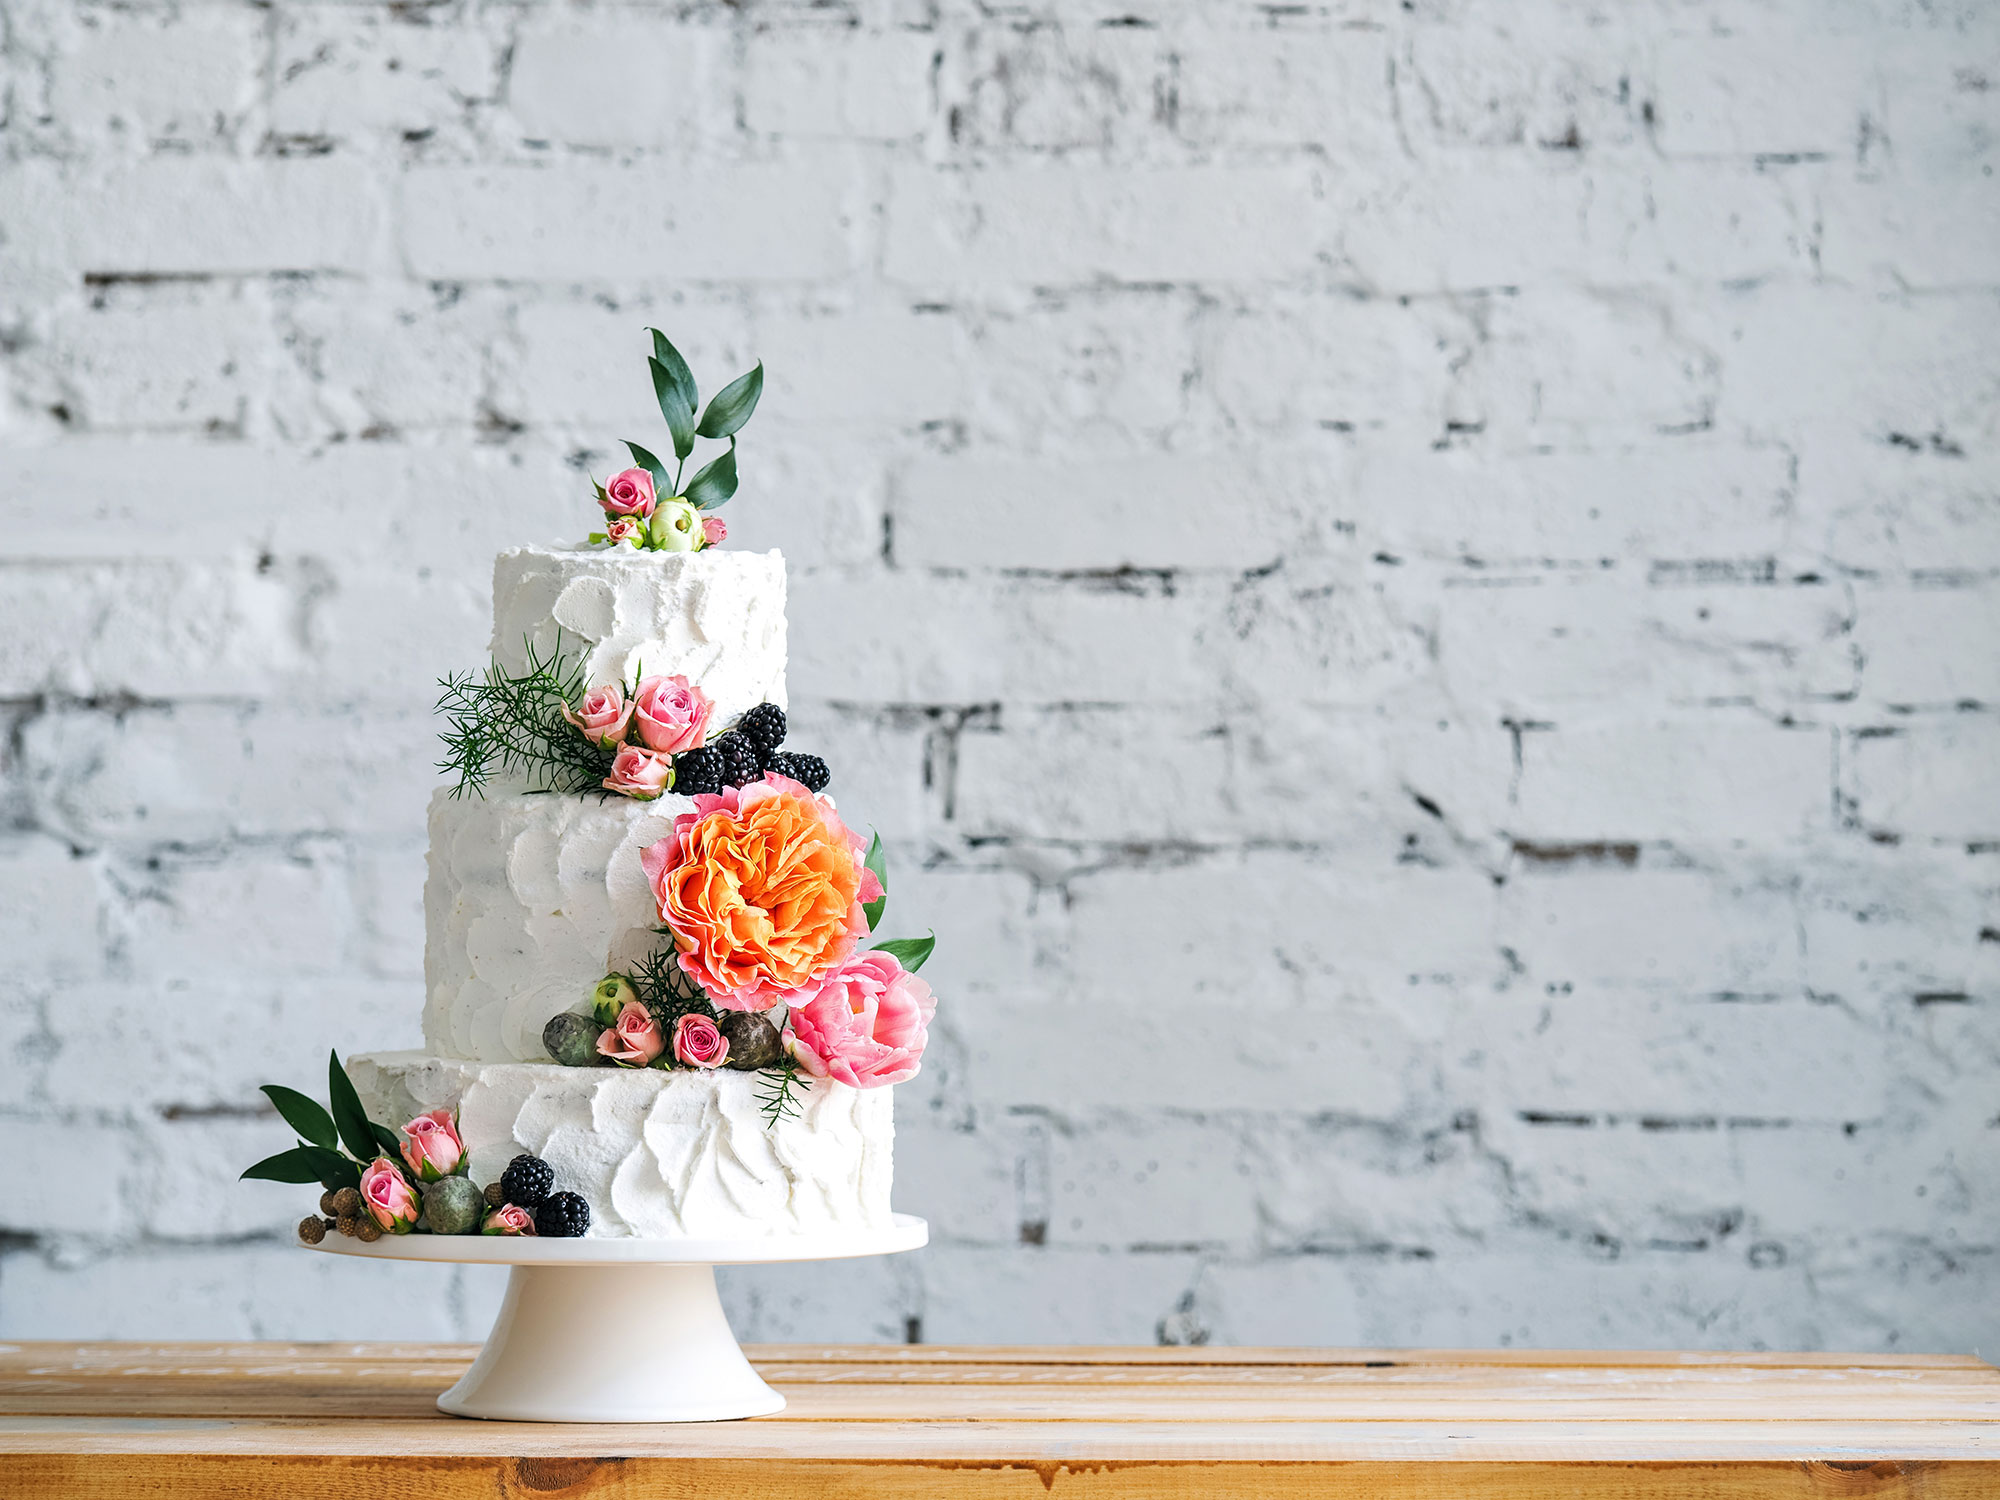 wedding cake covered in flowers against a white brick wall